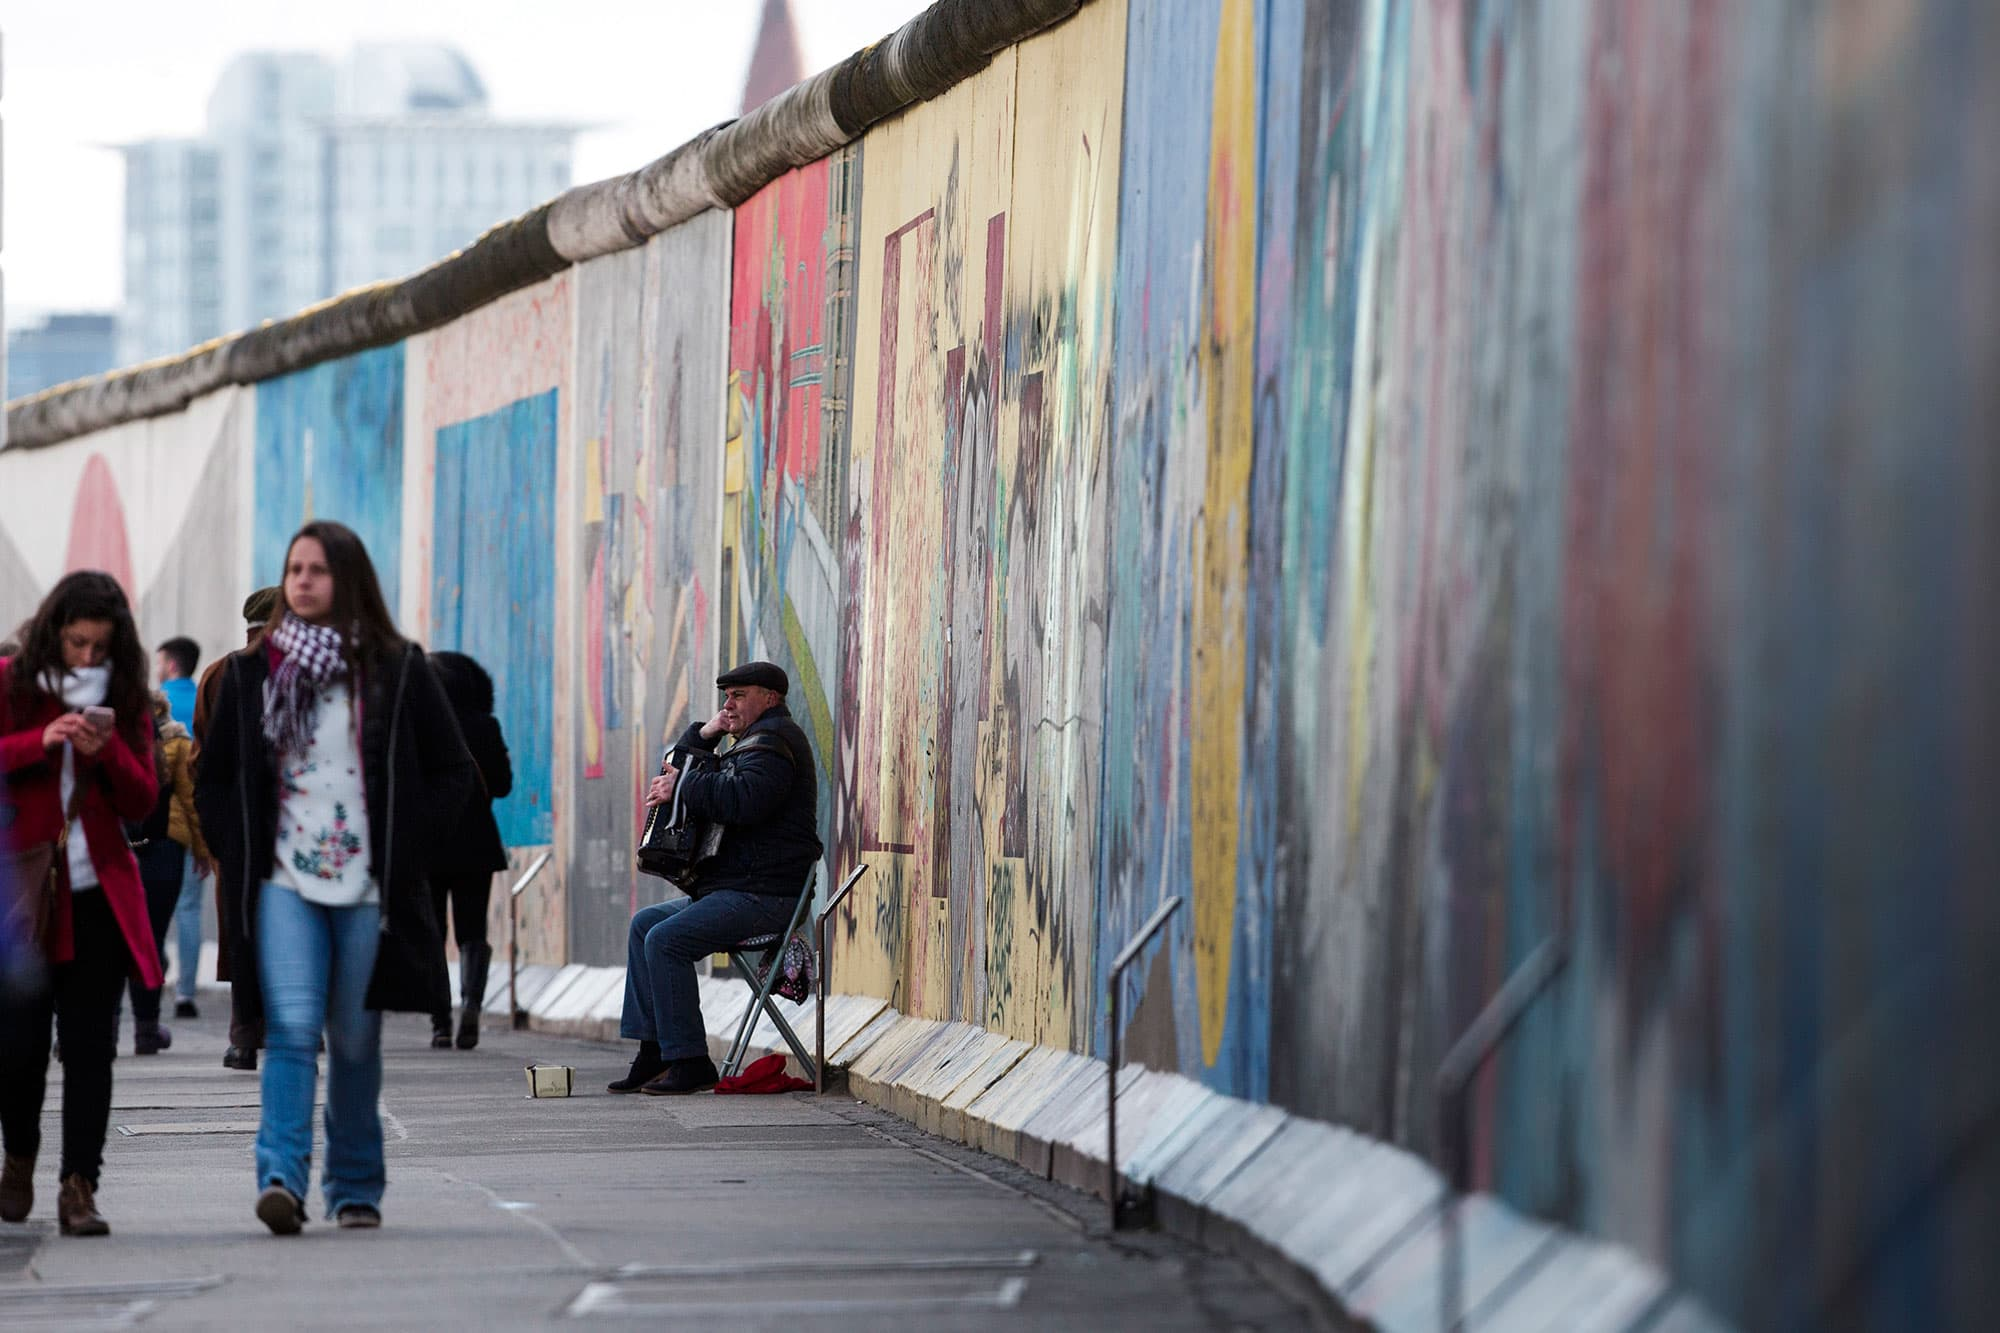 The Berlin Wall Its Now Gone For As Long As It Stood 10316 Days